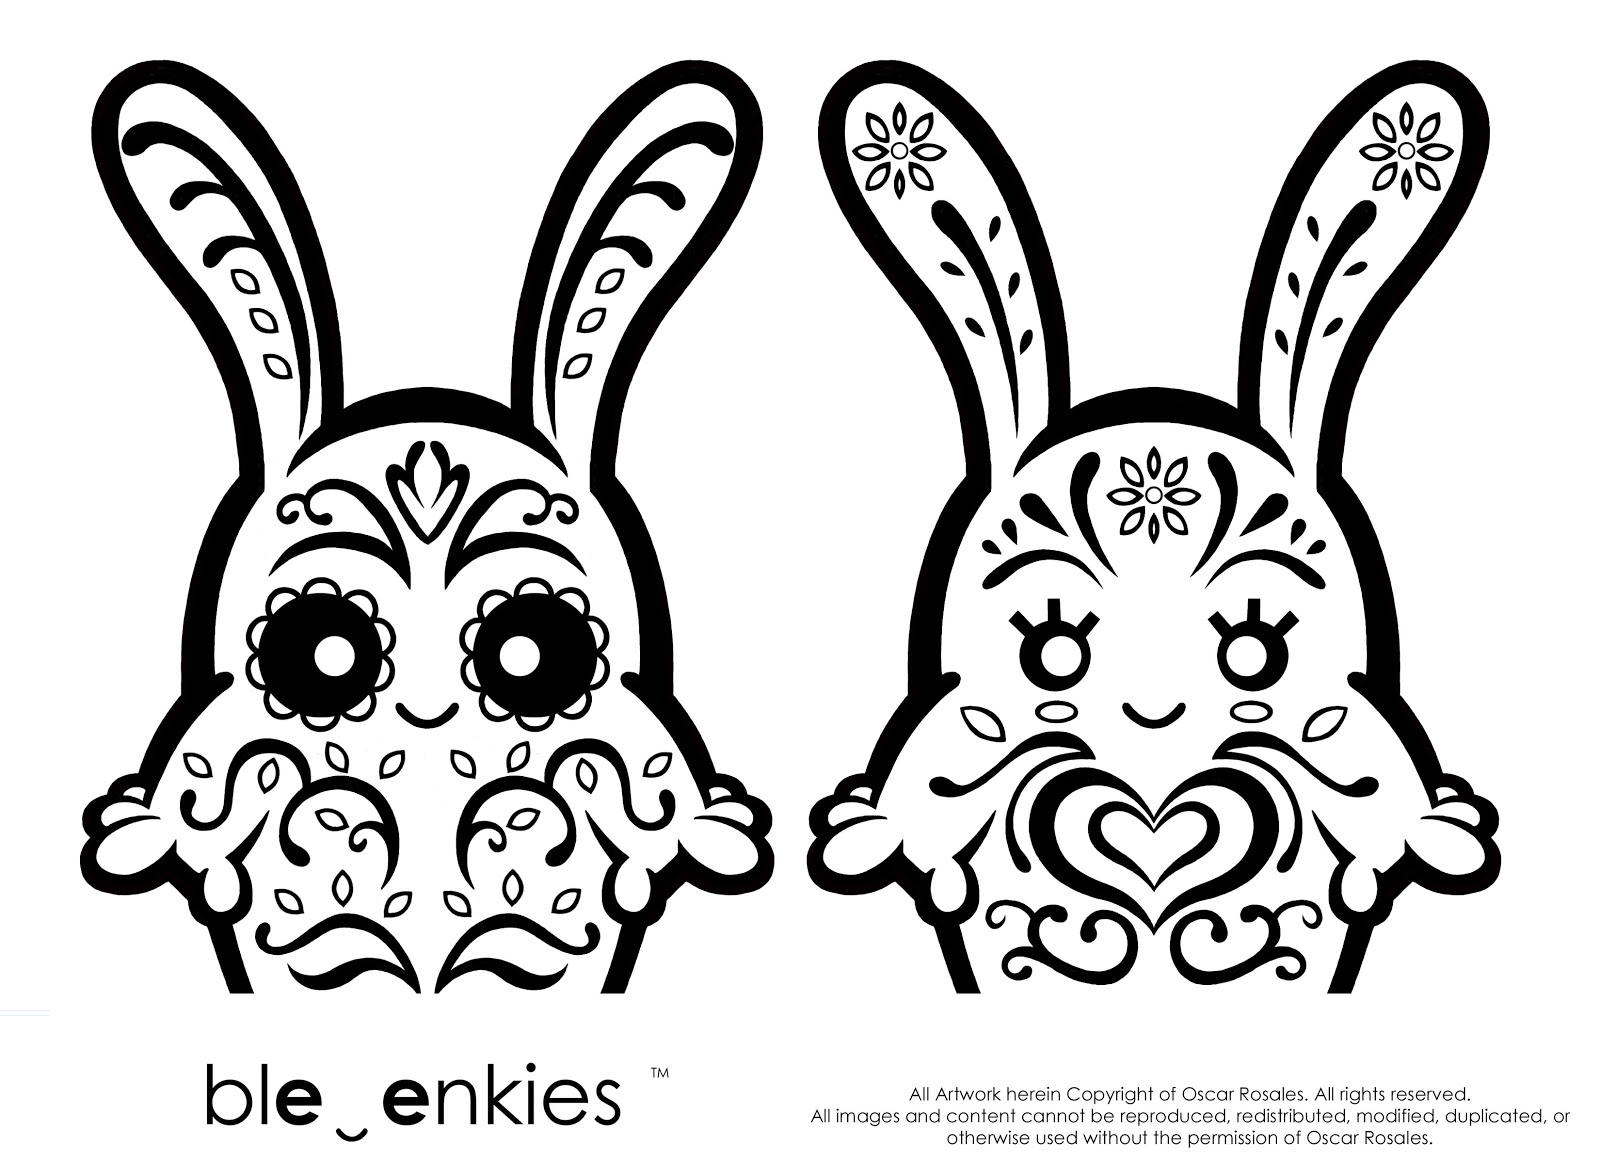 art of oscar rosales halloween coloring pages